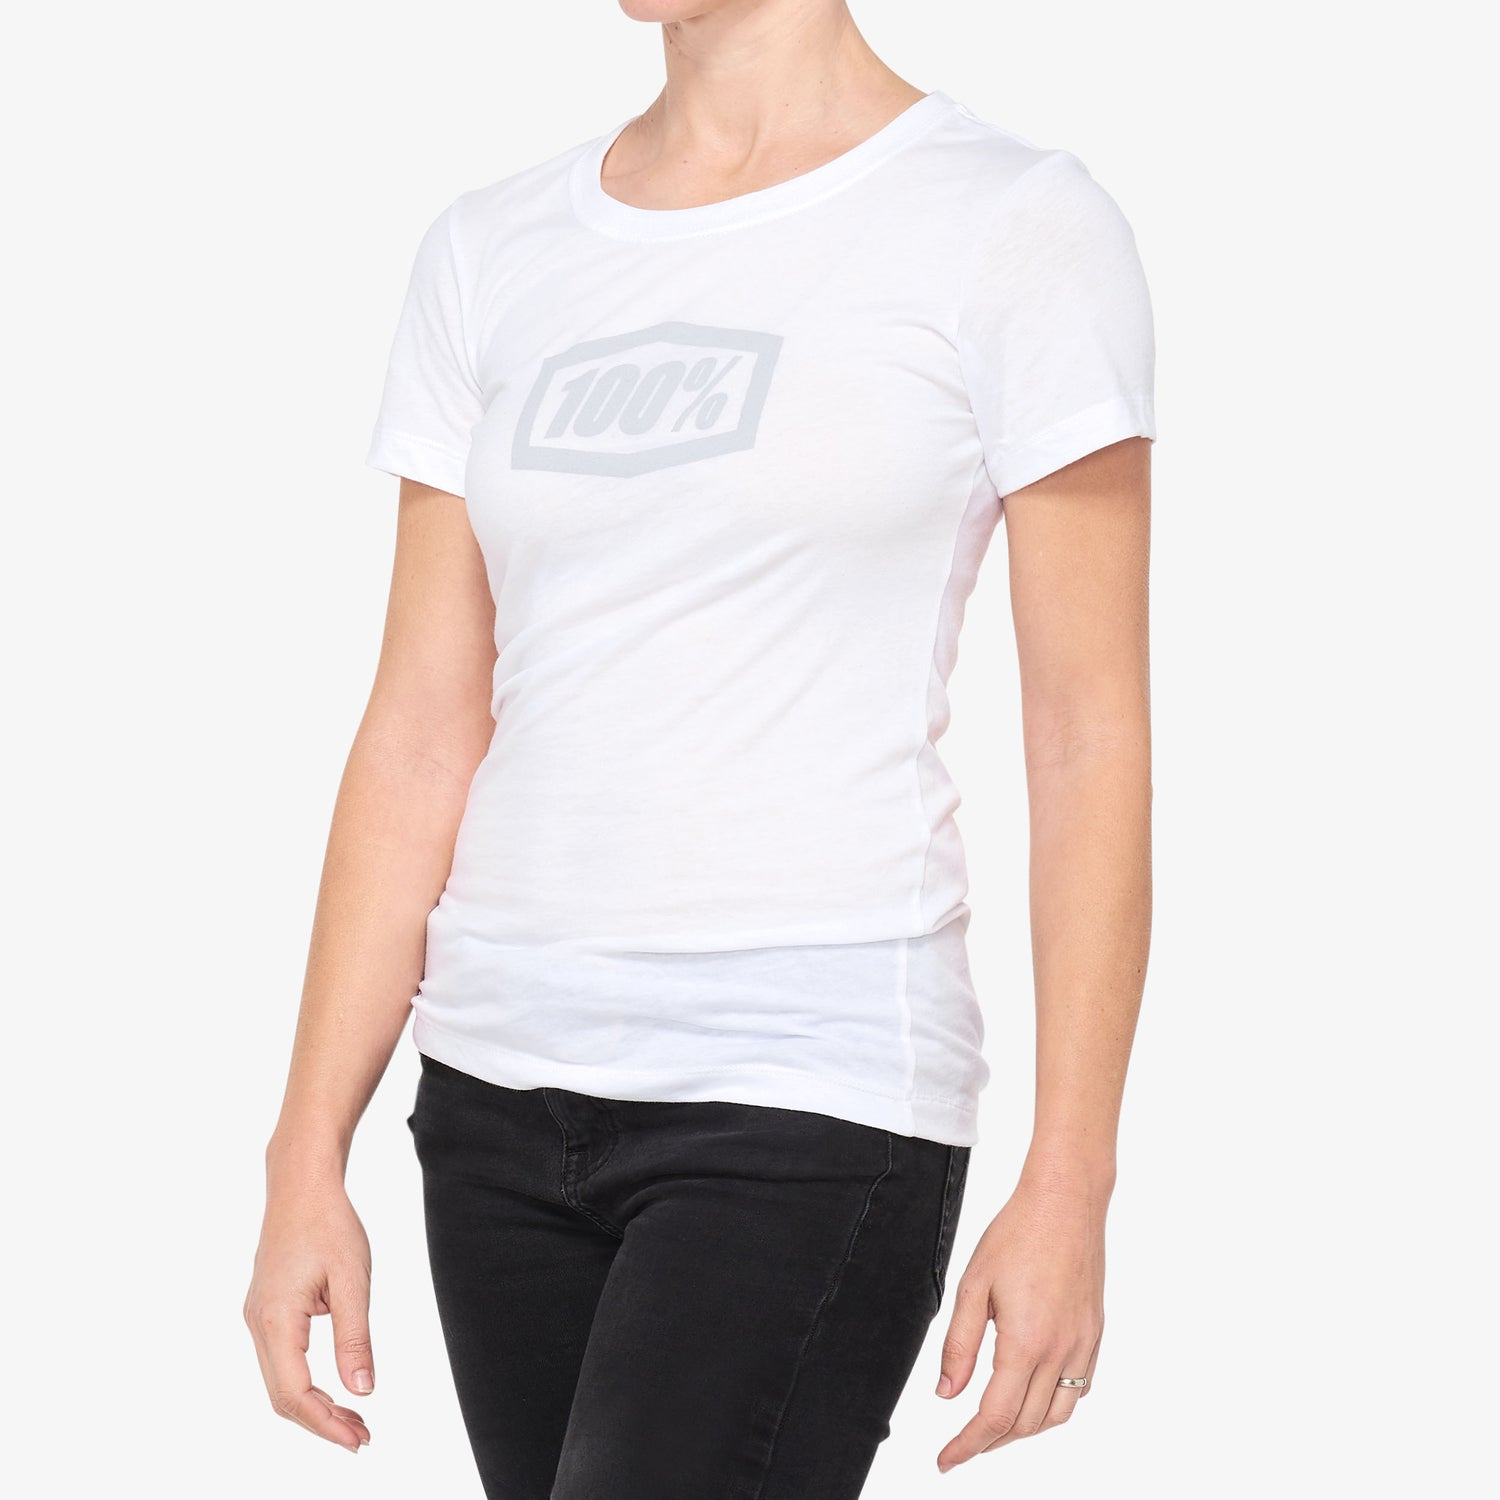 ESSENTIAL Women's T-shirt White